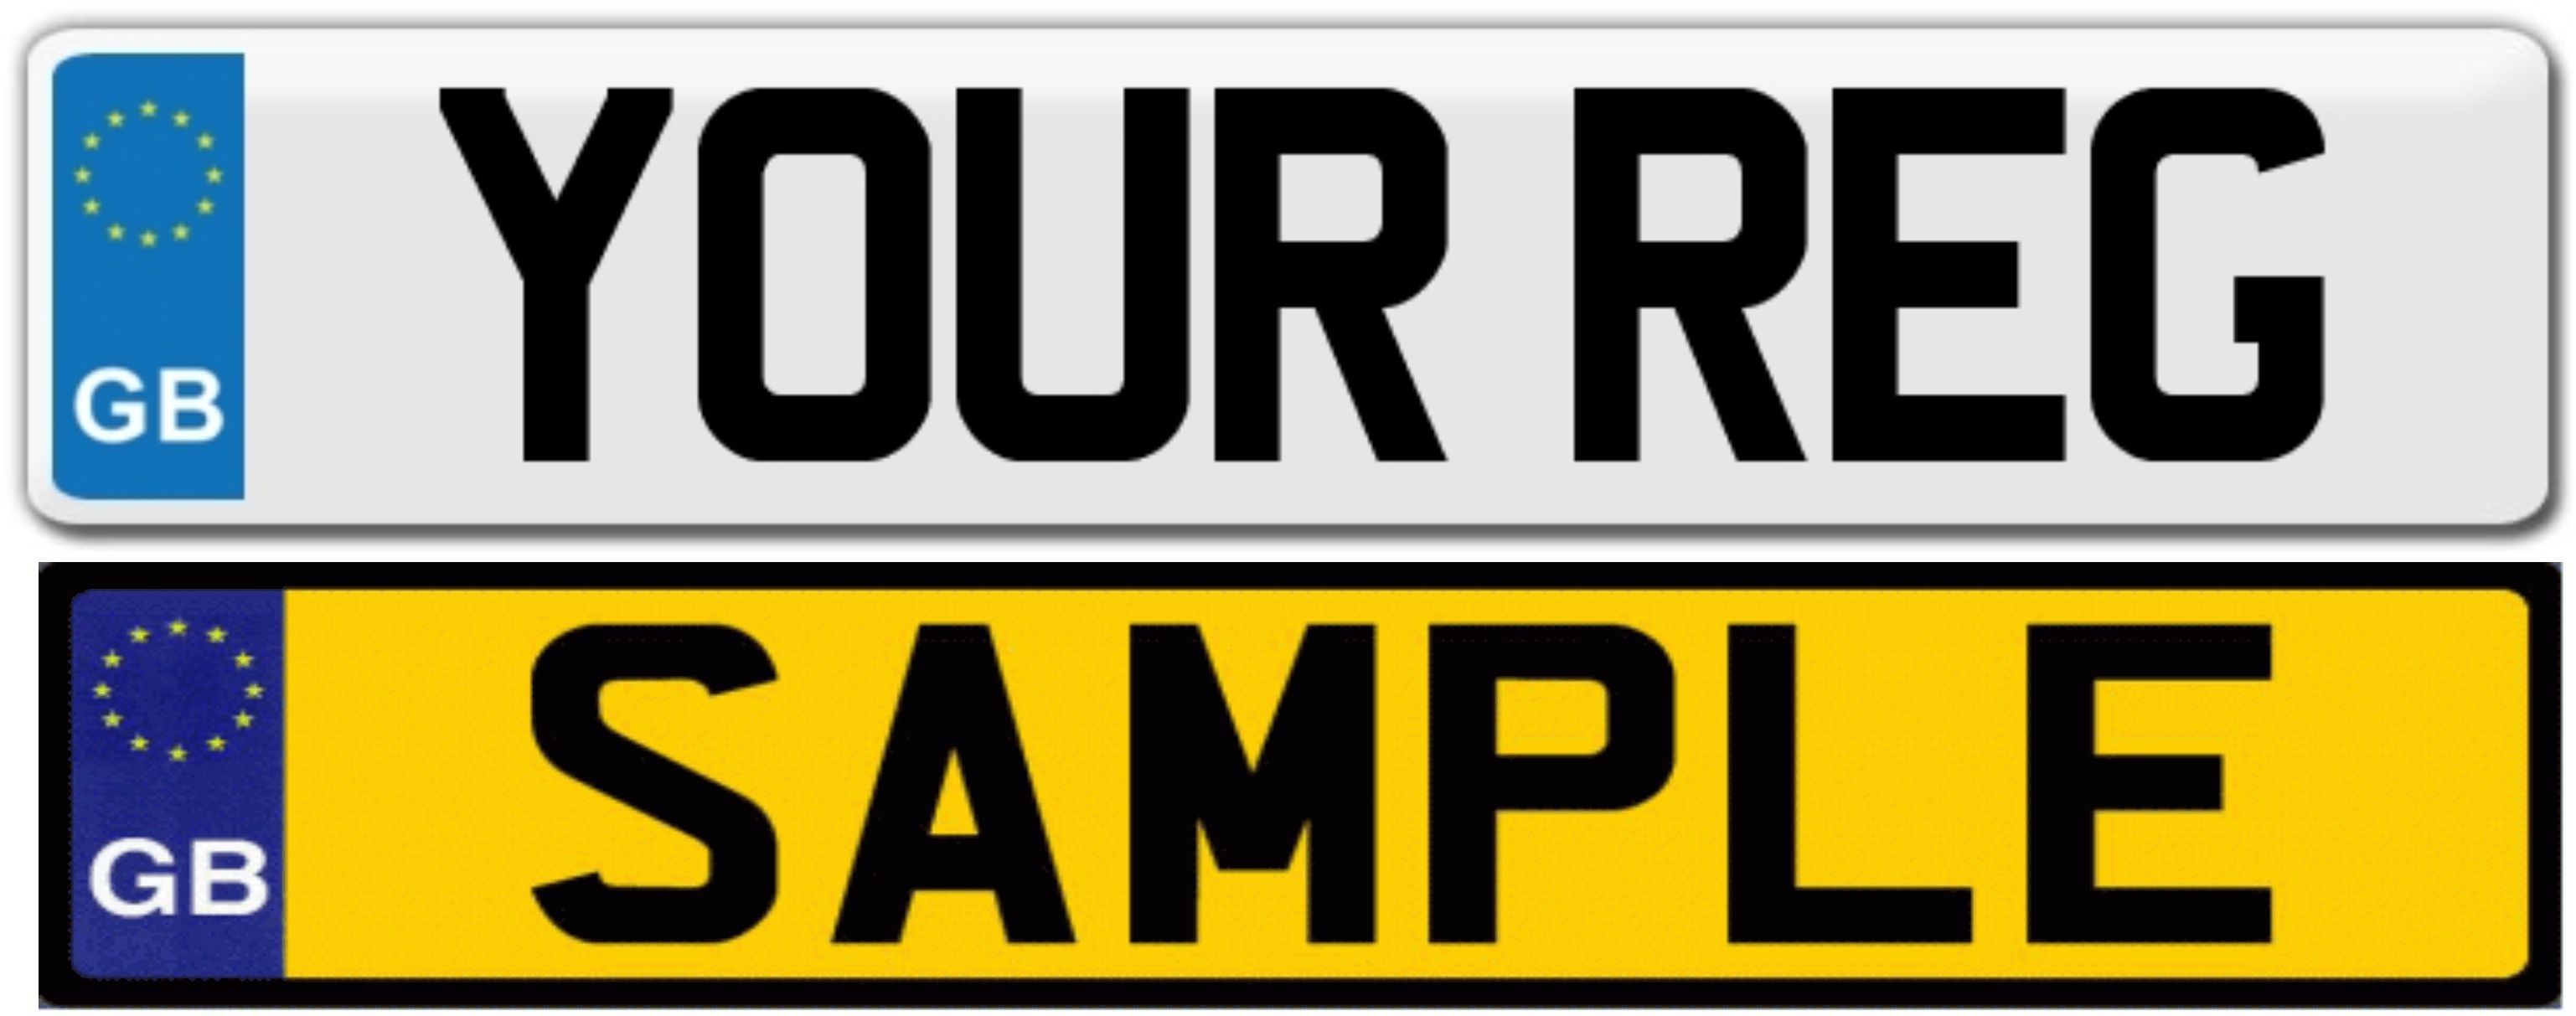 Multitudinous Range Available in Selection of Number Plates ...